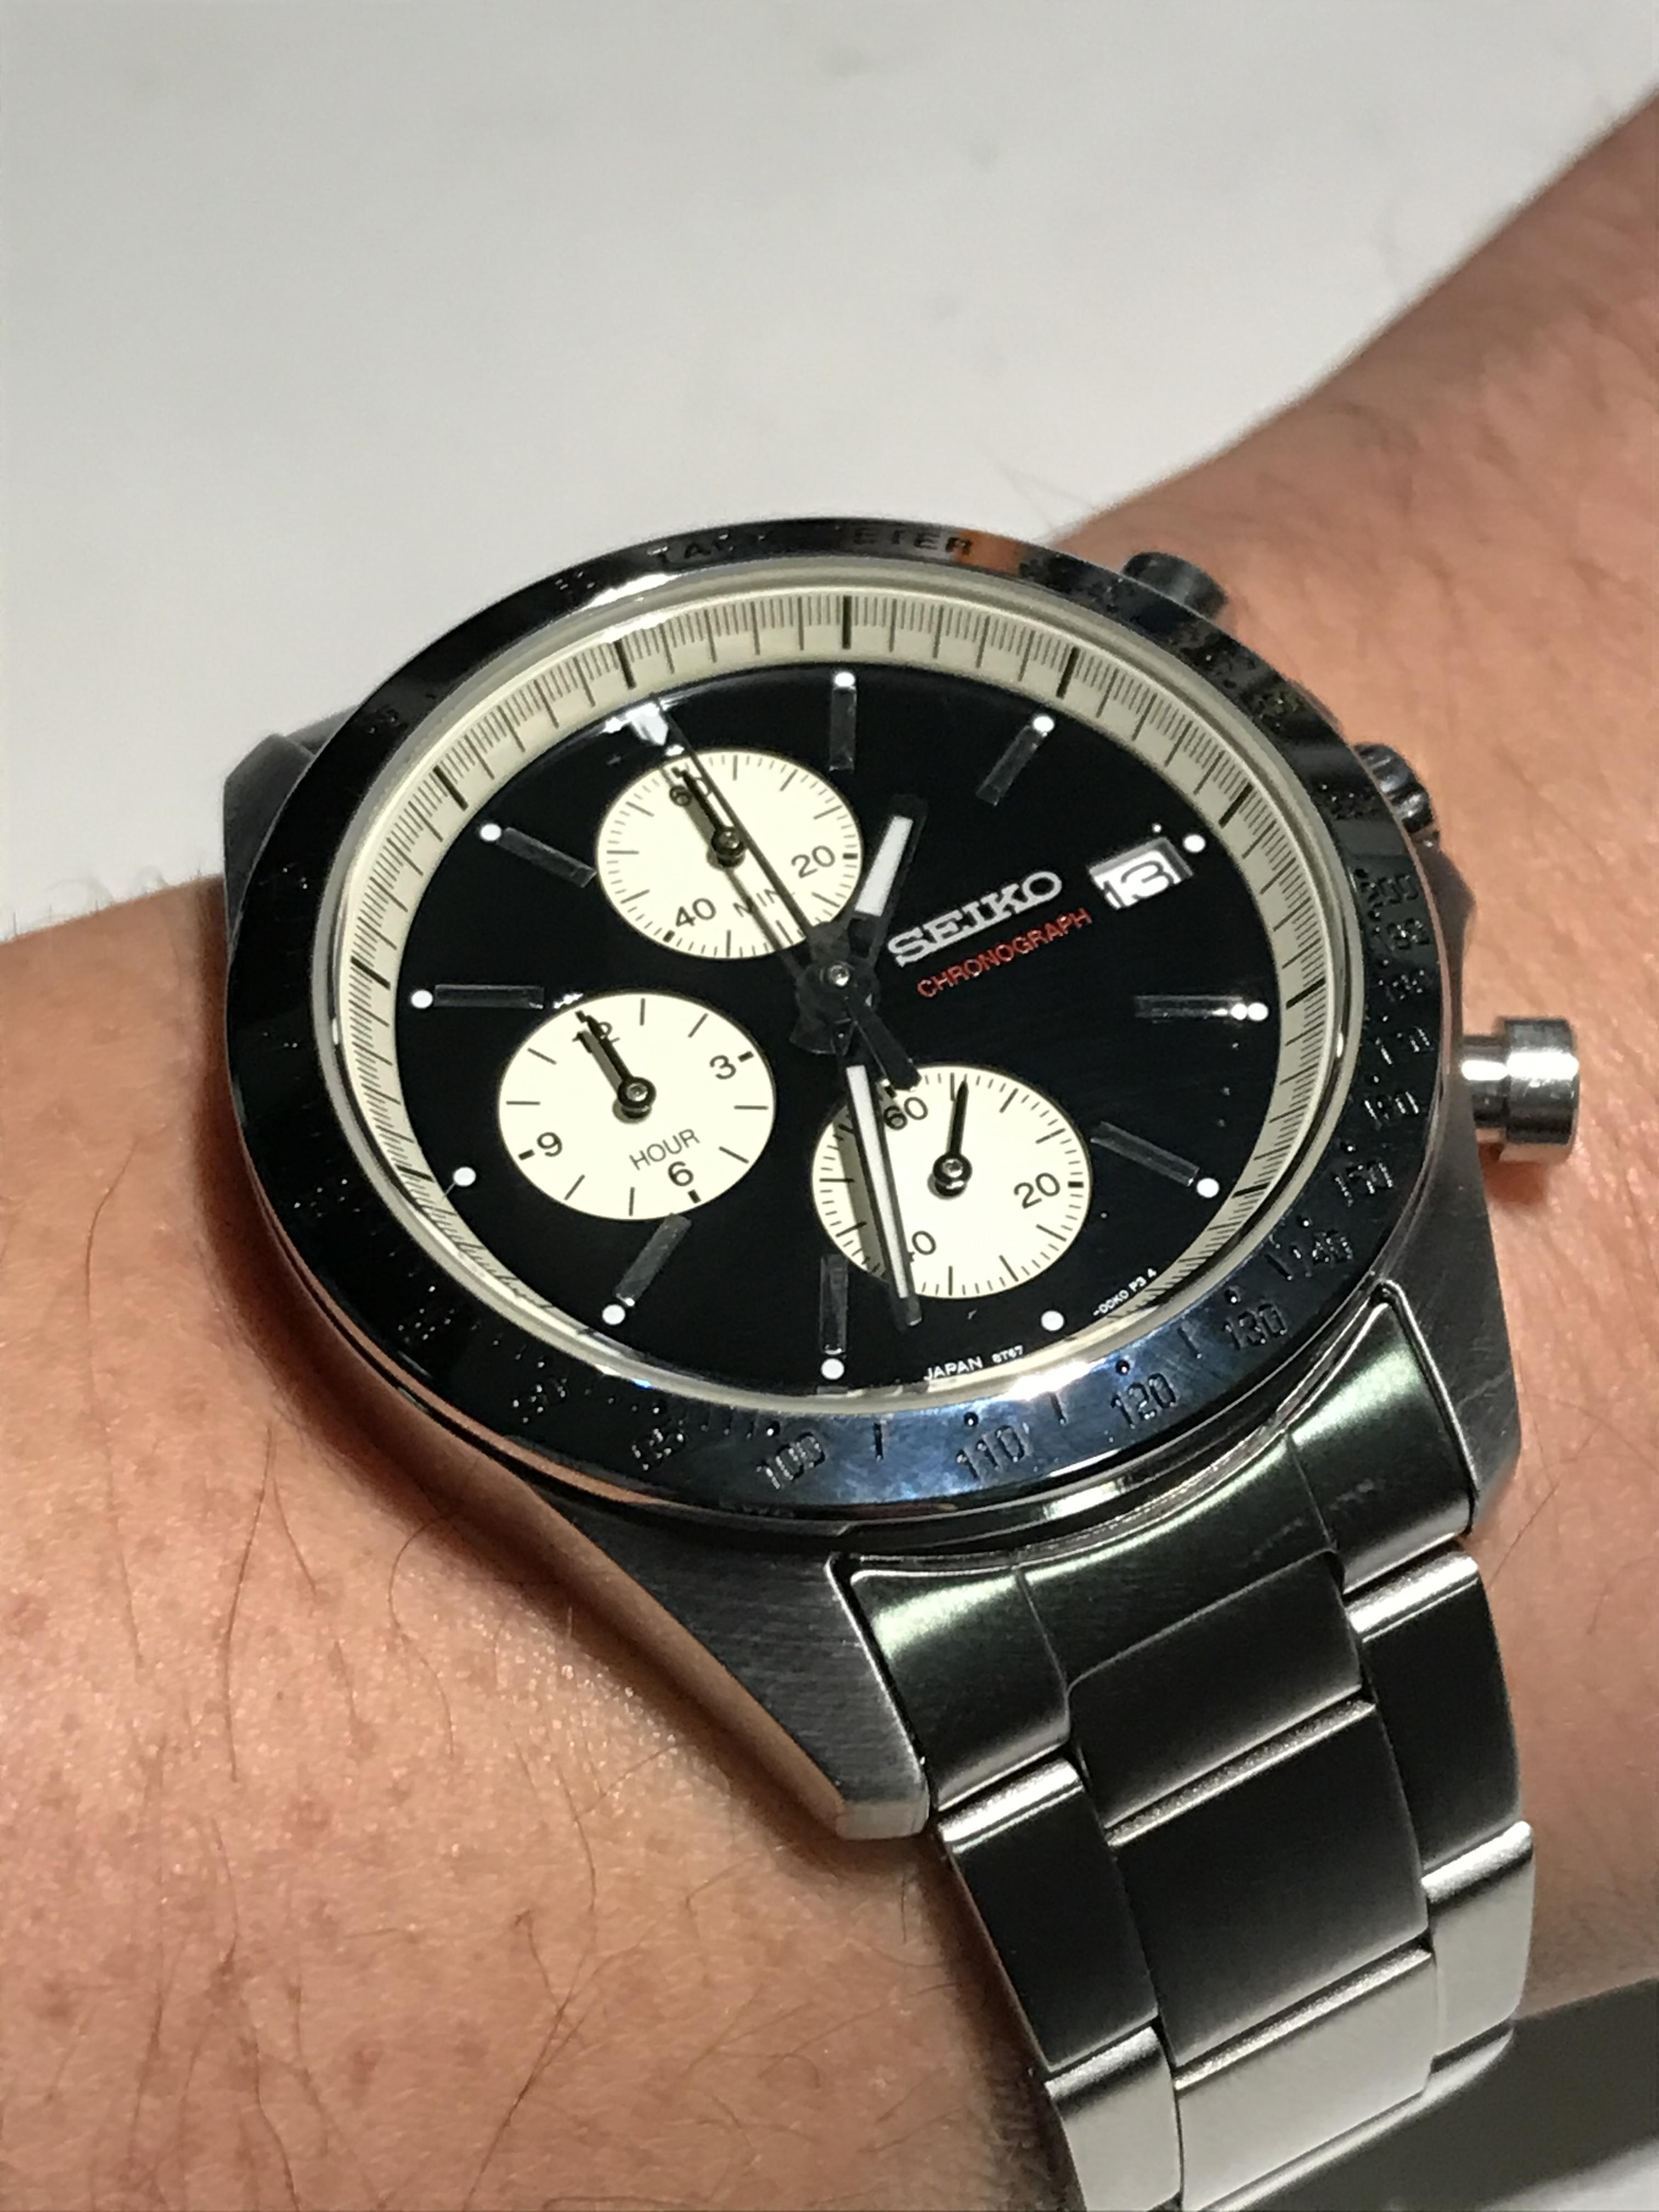 https://forums.watchuseek.com/attachment.php?attachmentid=14947913